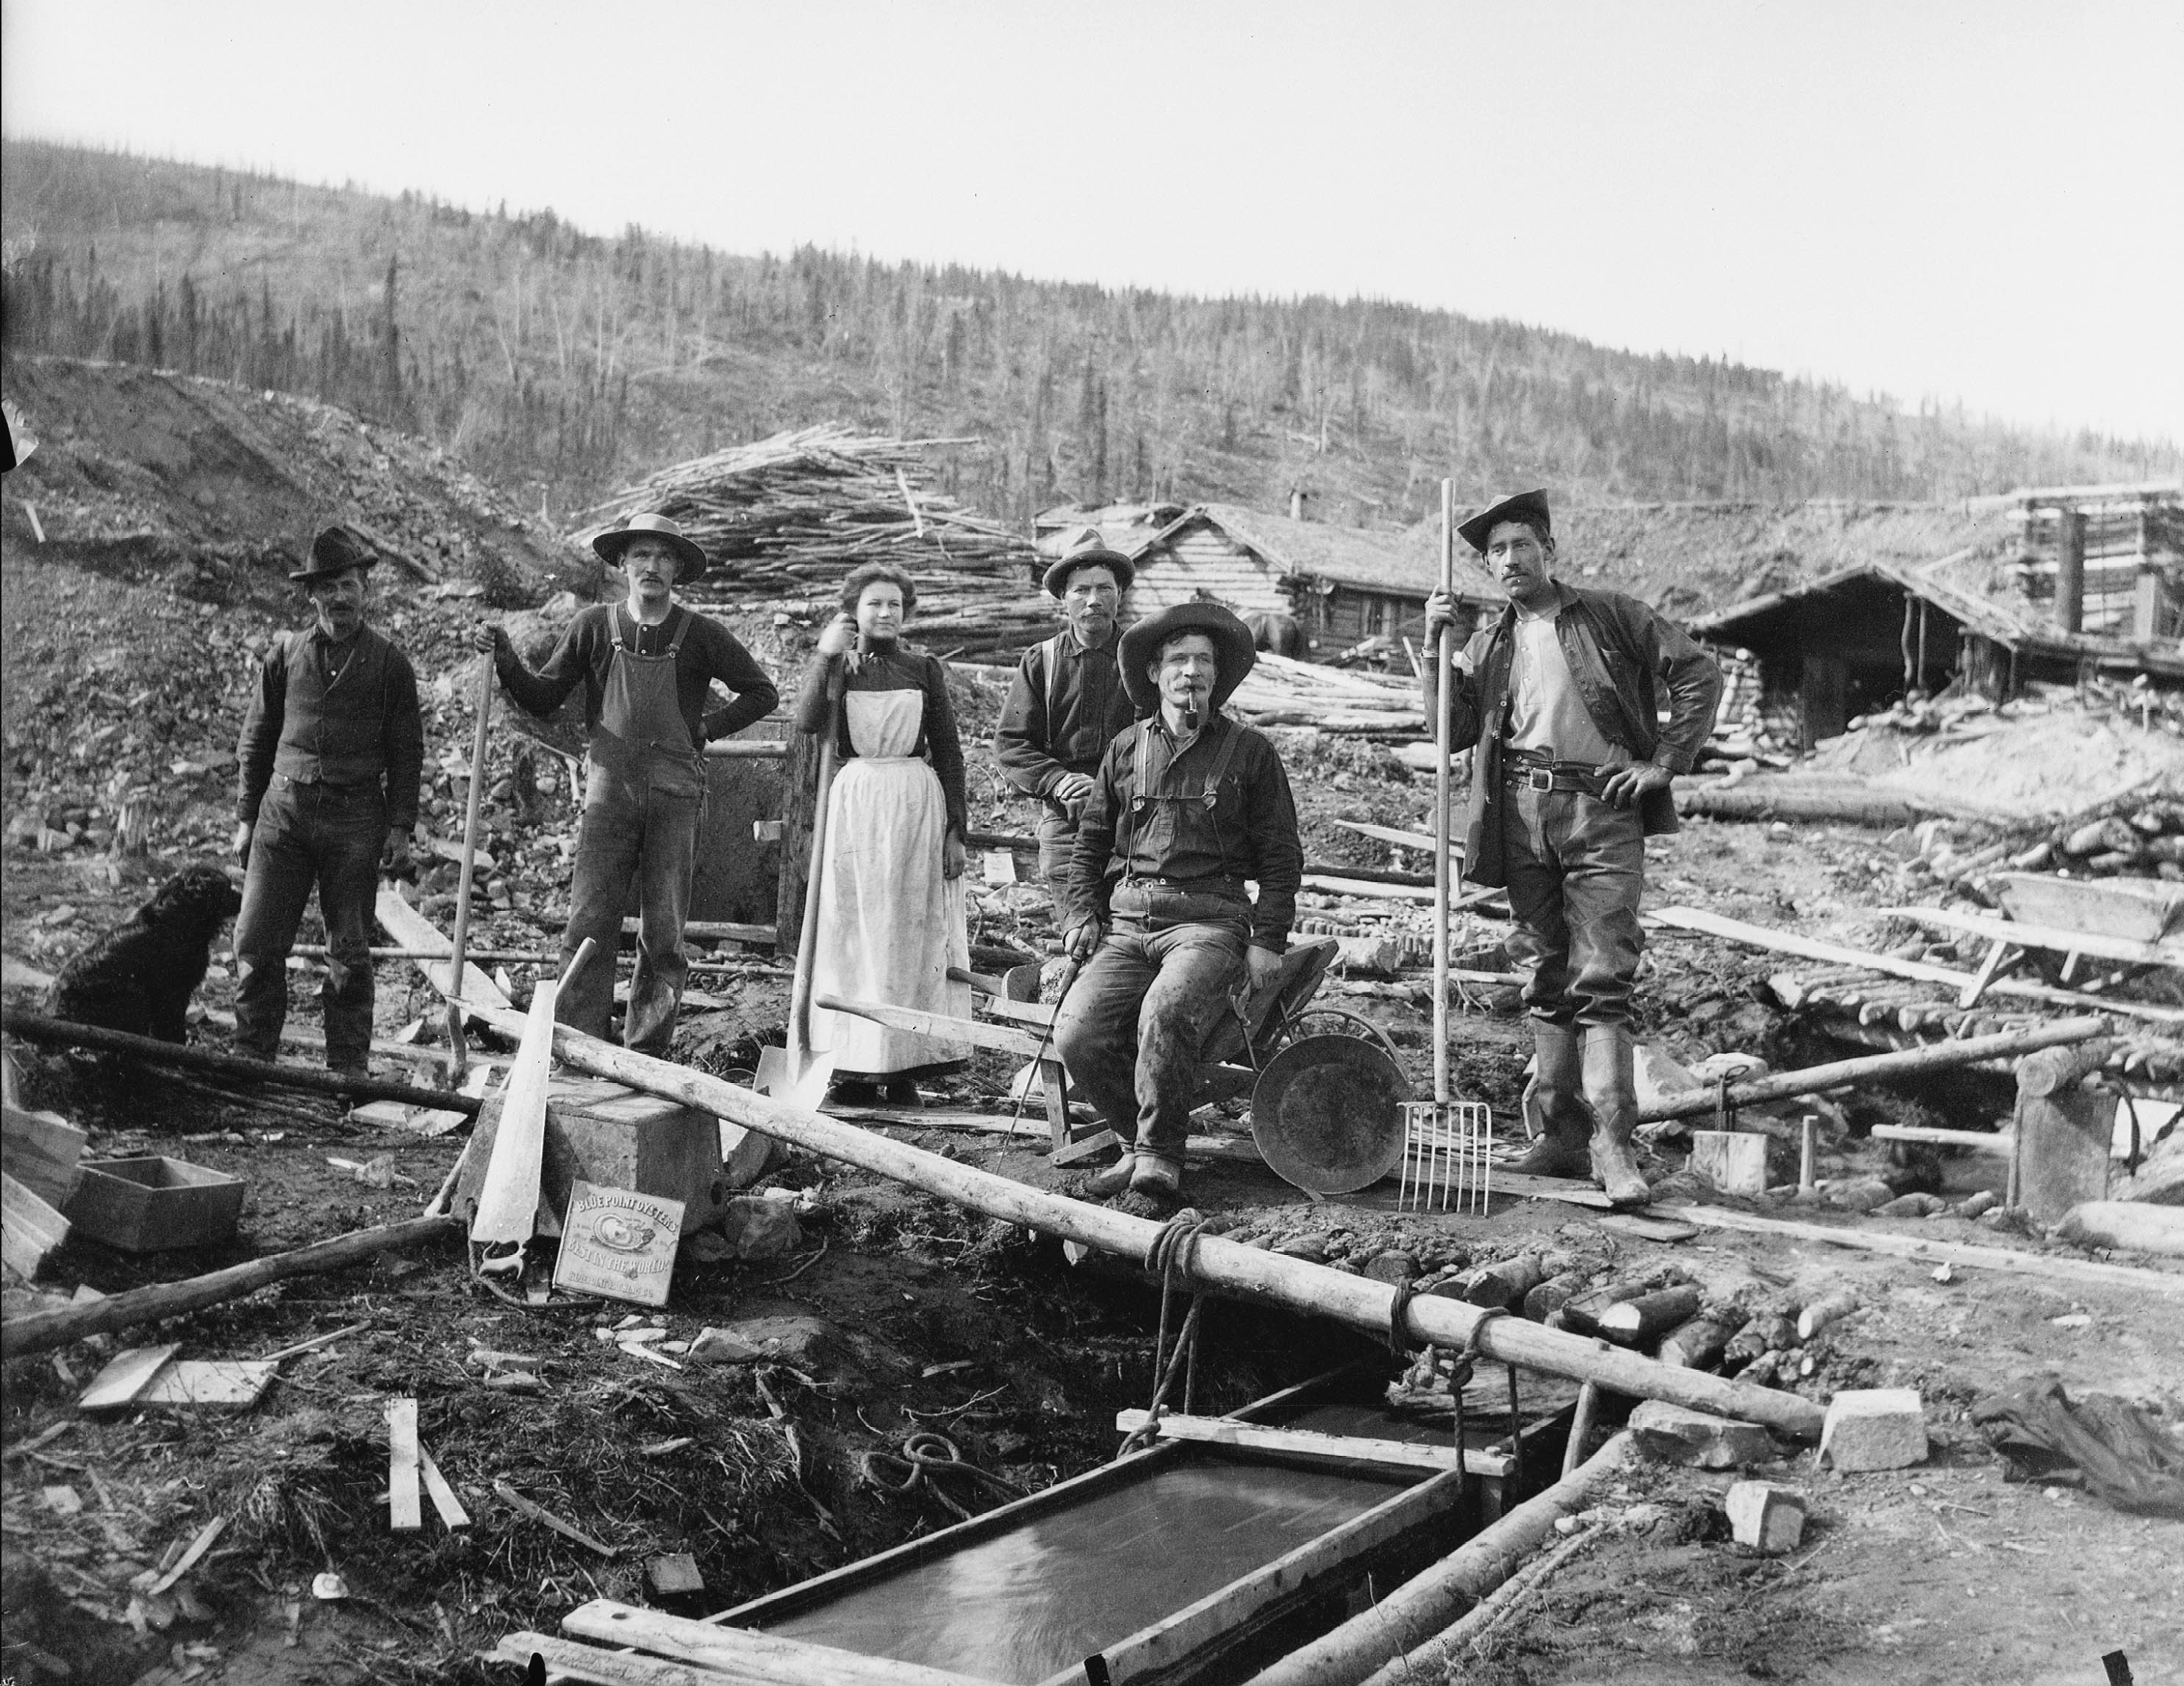 A group of unidentified people sluice for gold during the Klondike gold